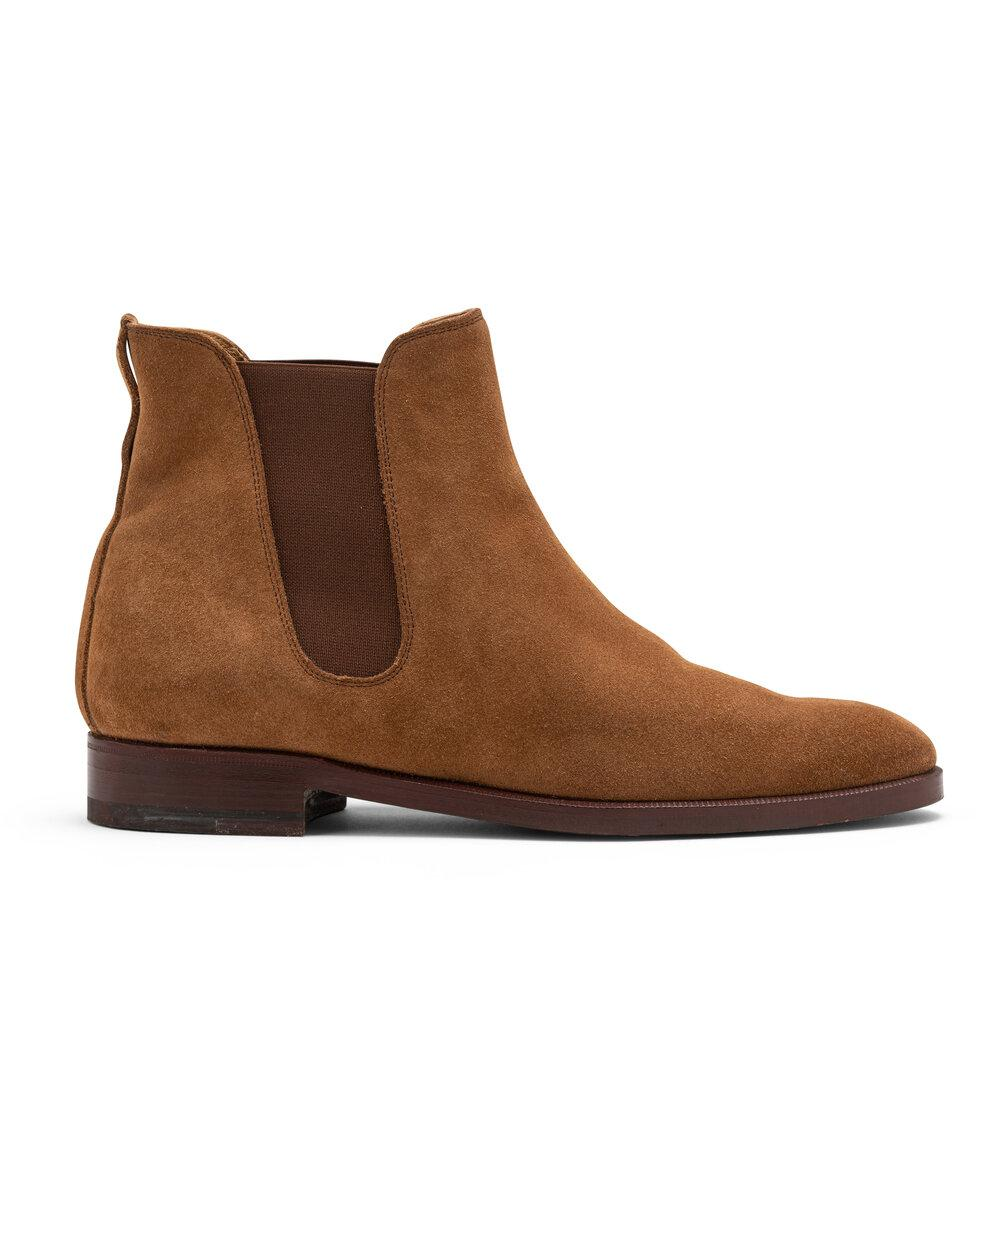 ODPEssentials Classic Chelsea Boot - Tan Suede 2